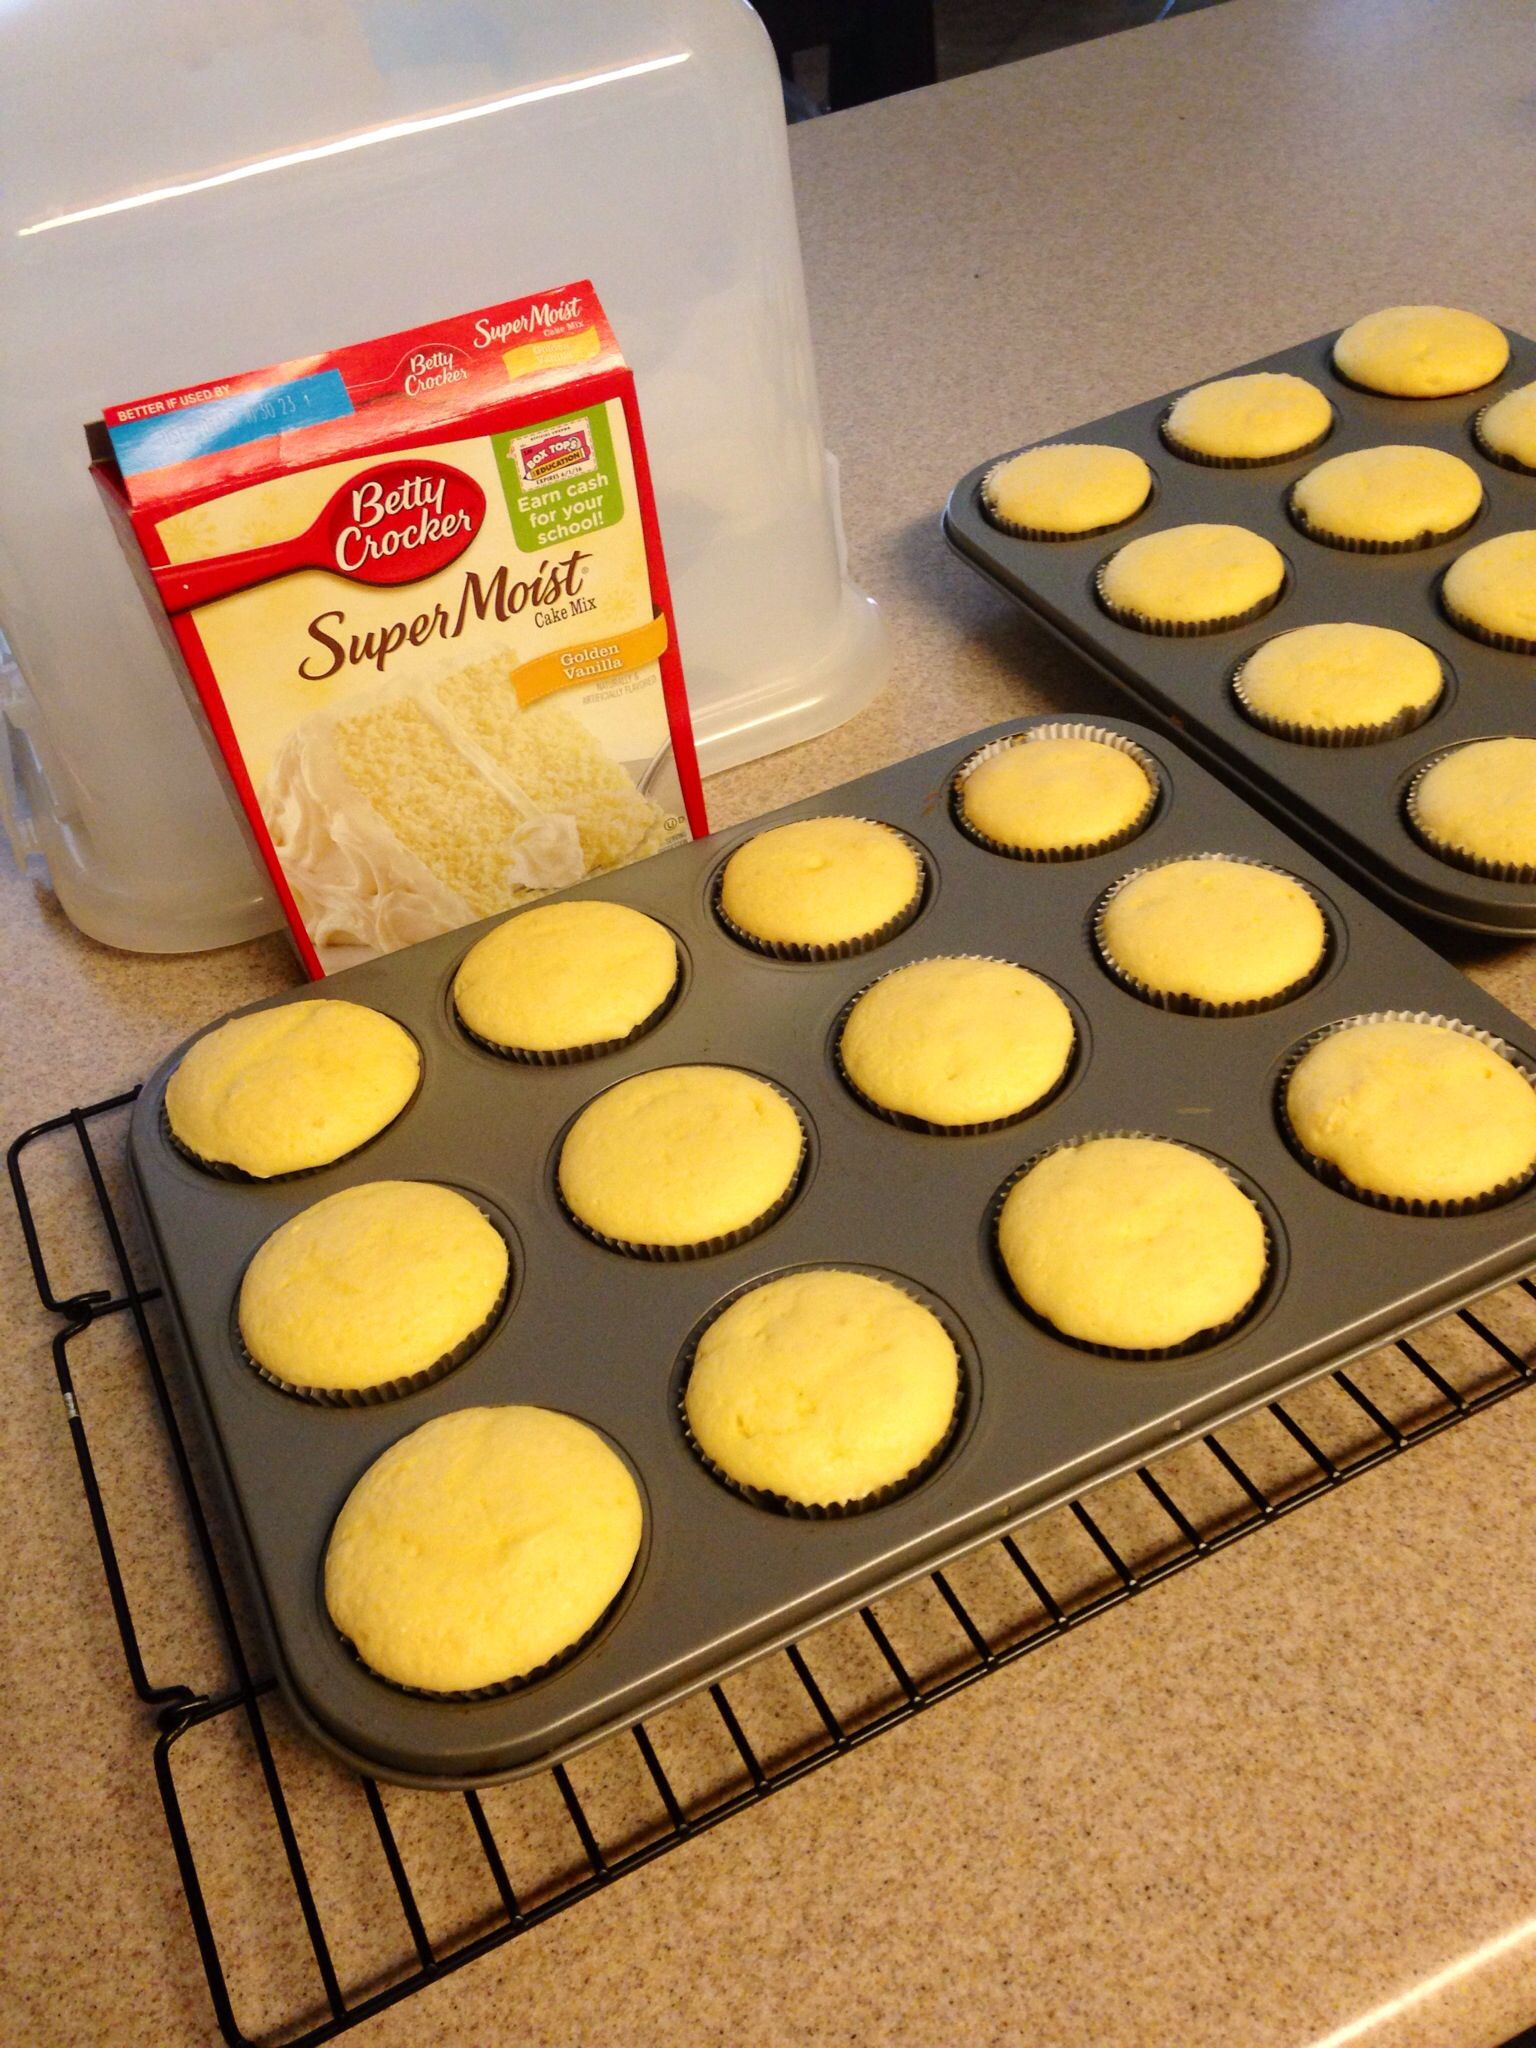 What Can You Substitute Oil For In Cake Mix